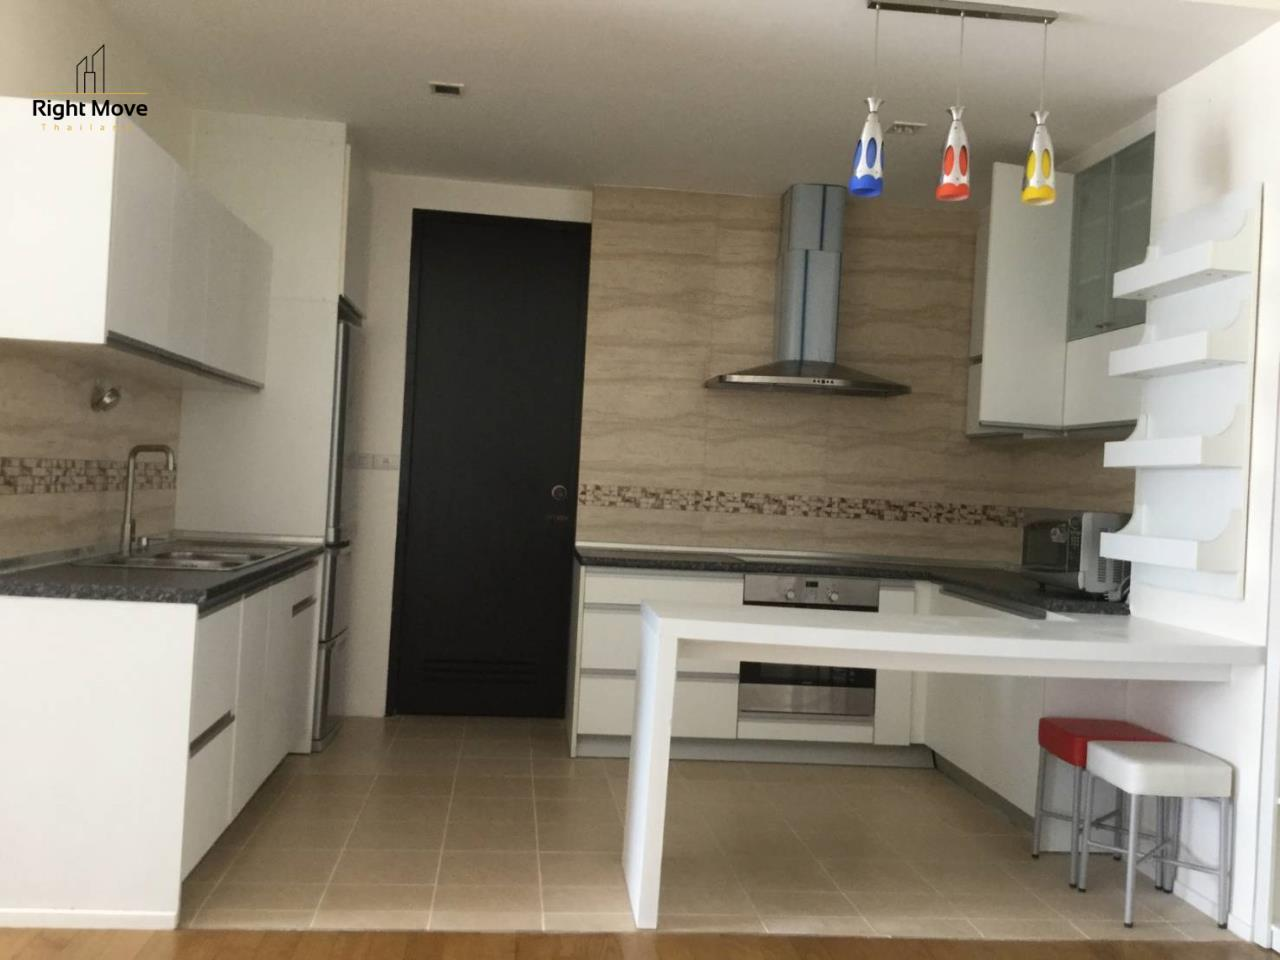 Right Move Thailand Agency's CA5486 Madison Condominium For Rent 90,000 THB - 3 Bedrooms - 160 sqm. 4